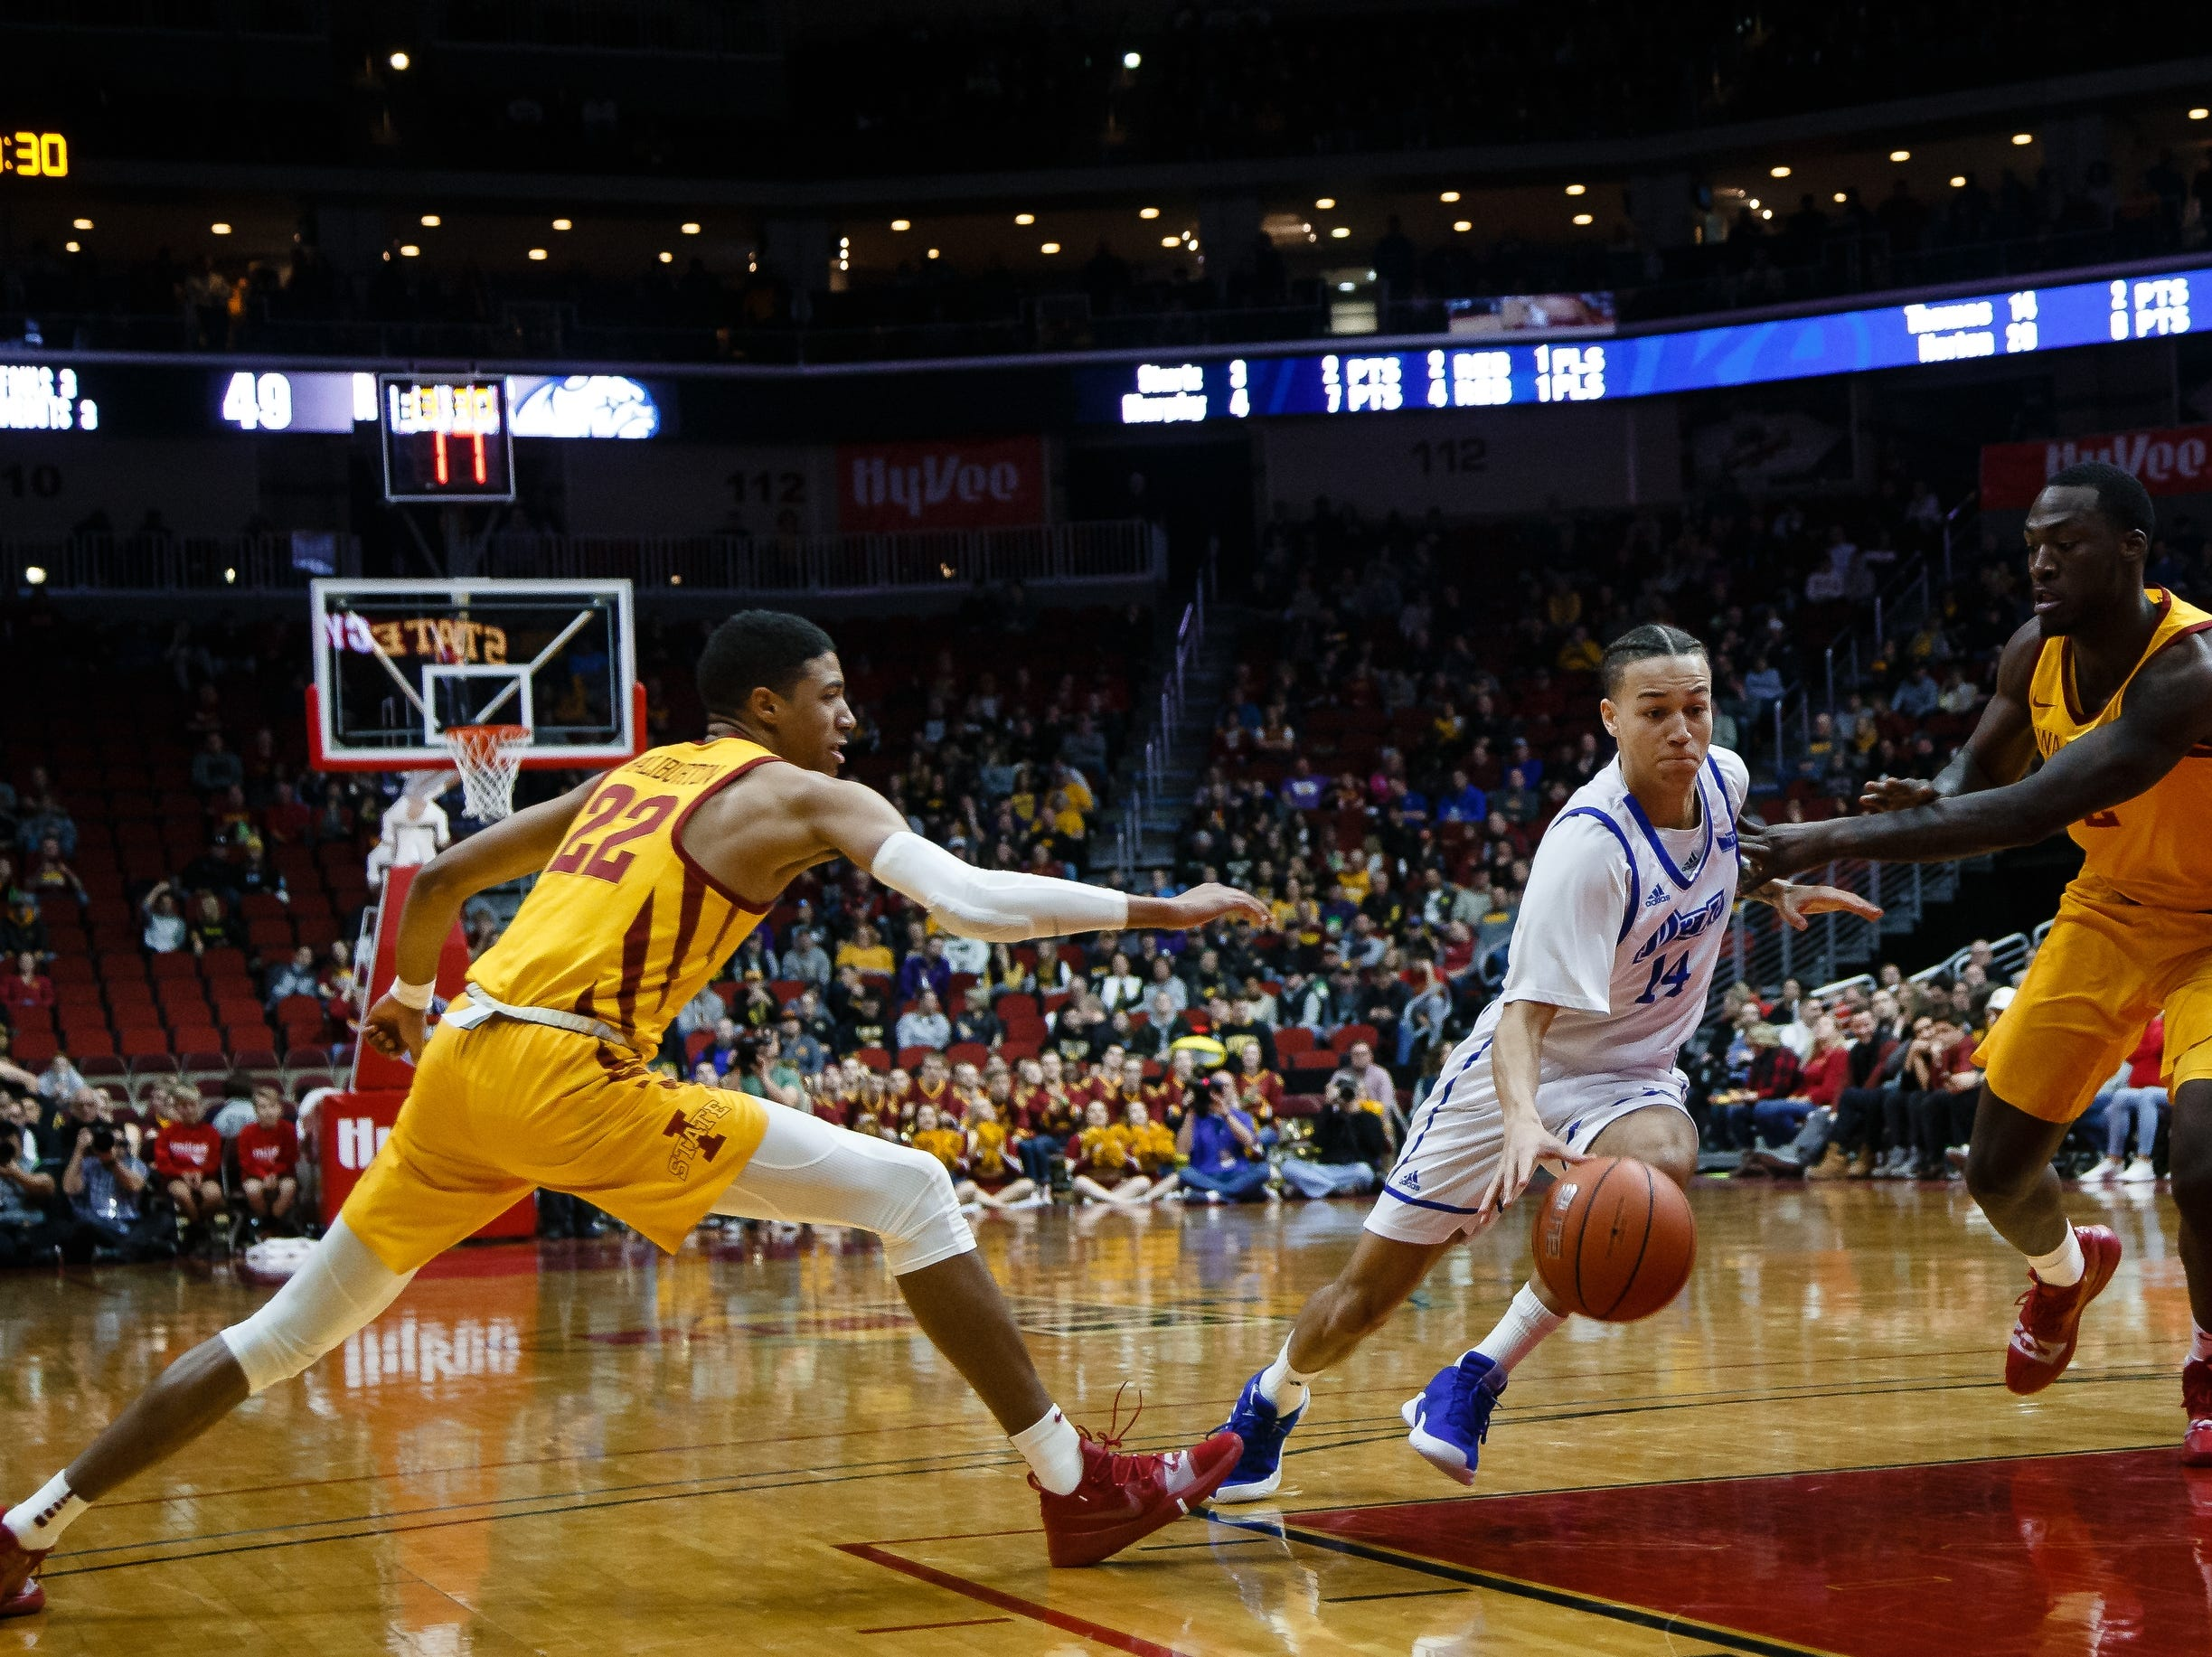 Drake's NoahÊThomas (14) drives to the net during their basketball game at the Hy-Vee Classic on Saturday, Dec. 15, 2018, in Des Moines. Iowa State would go on to defeat Drake 77-68.